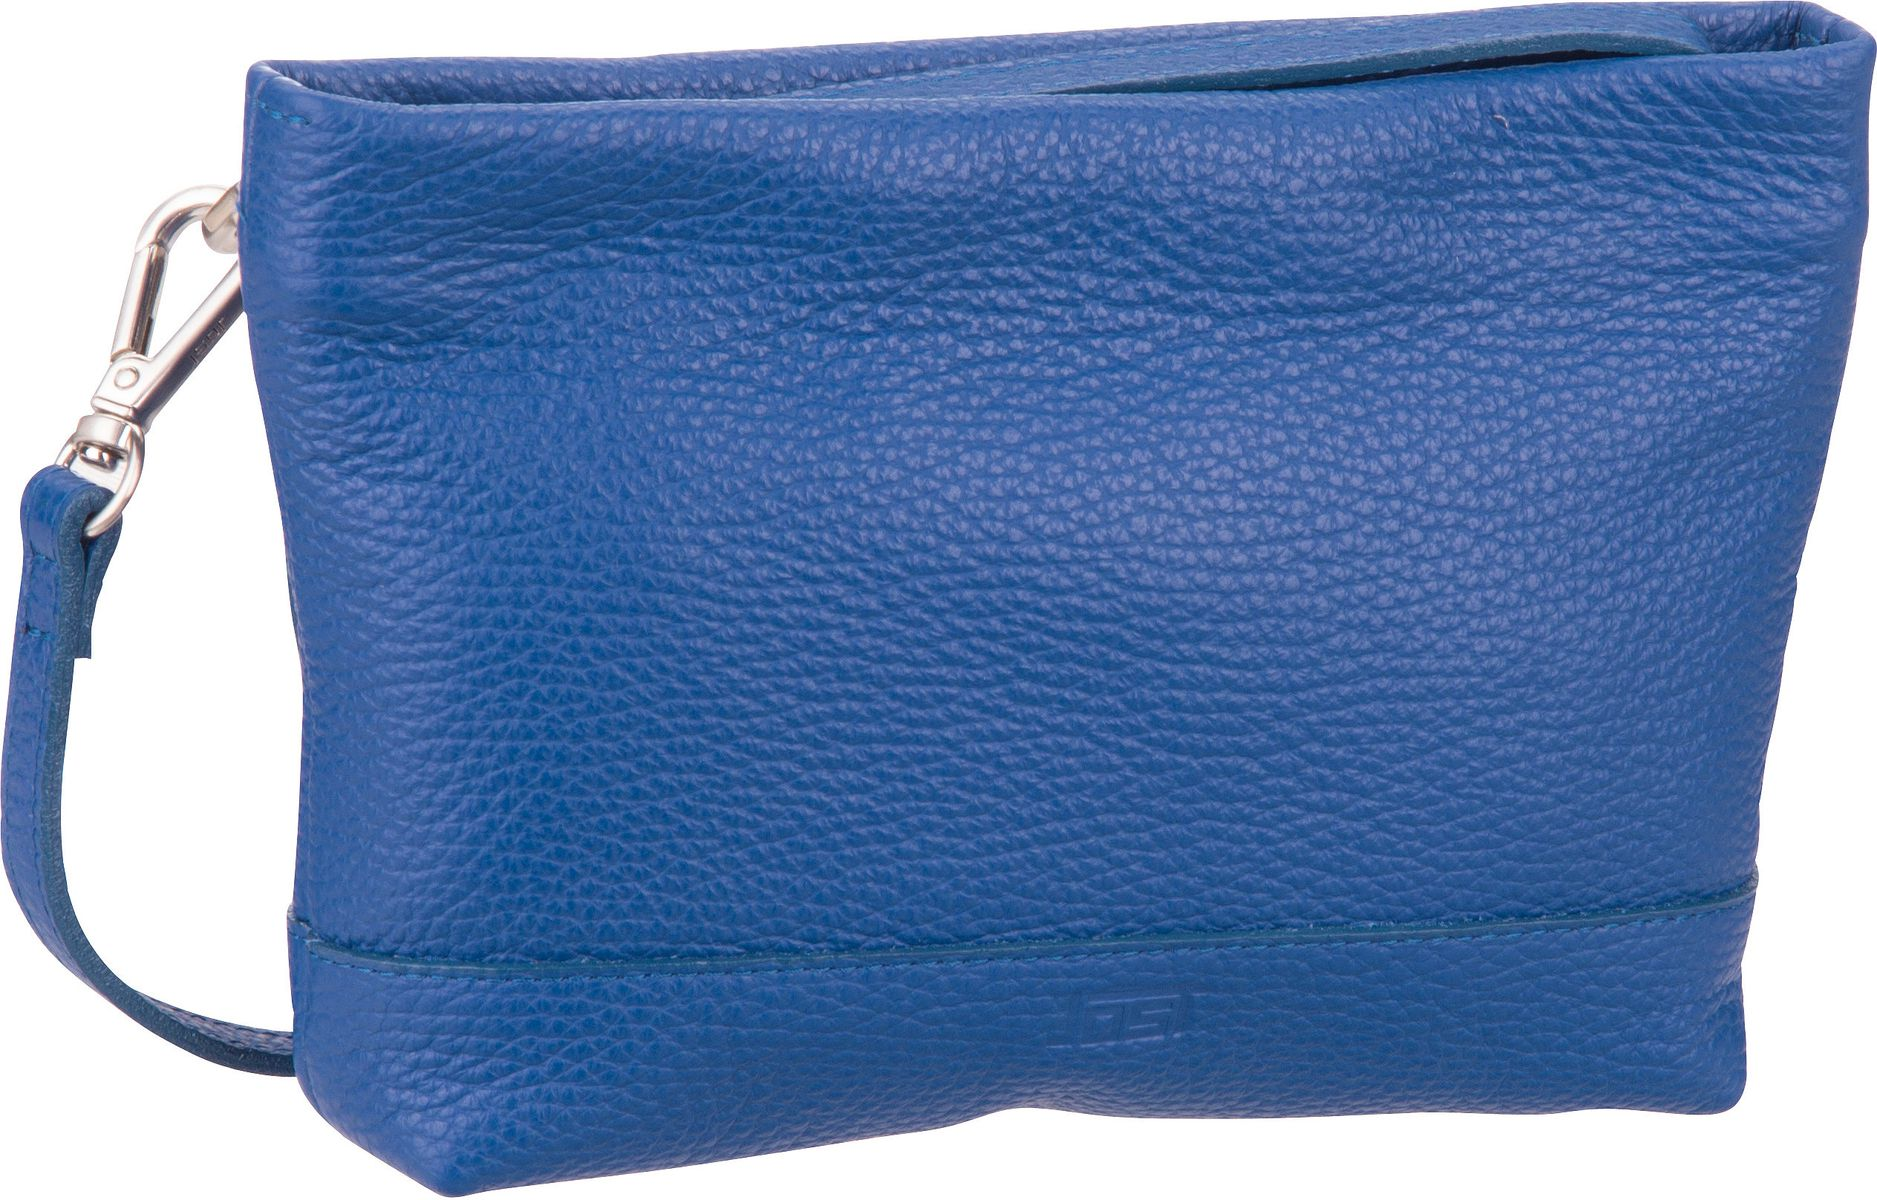 Umhängetasche Vika 1824 Belt/Shoulder Bag Royalblue